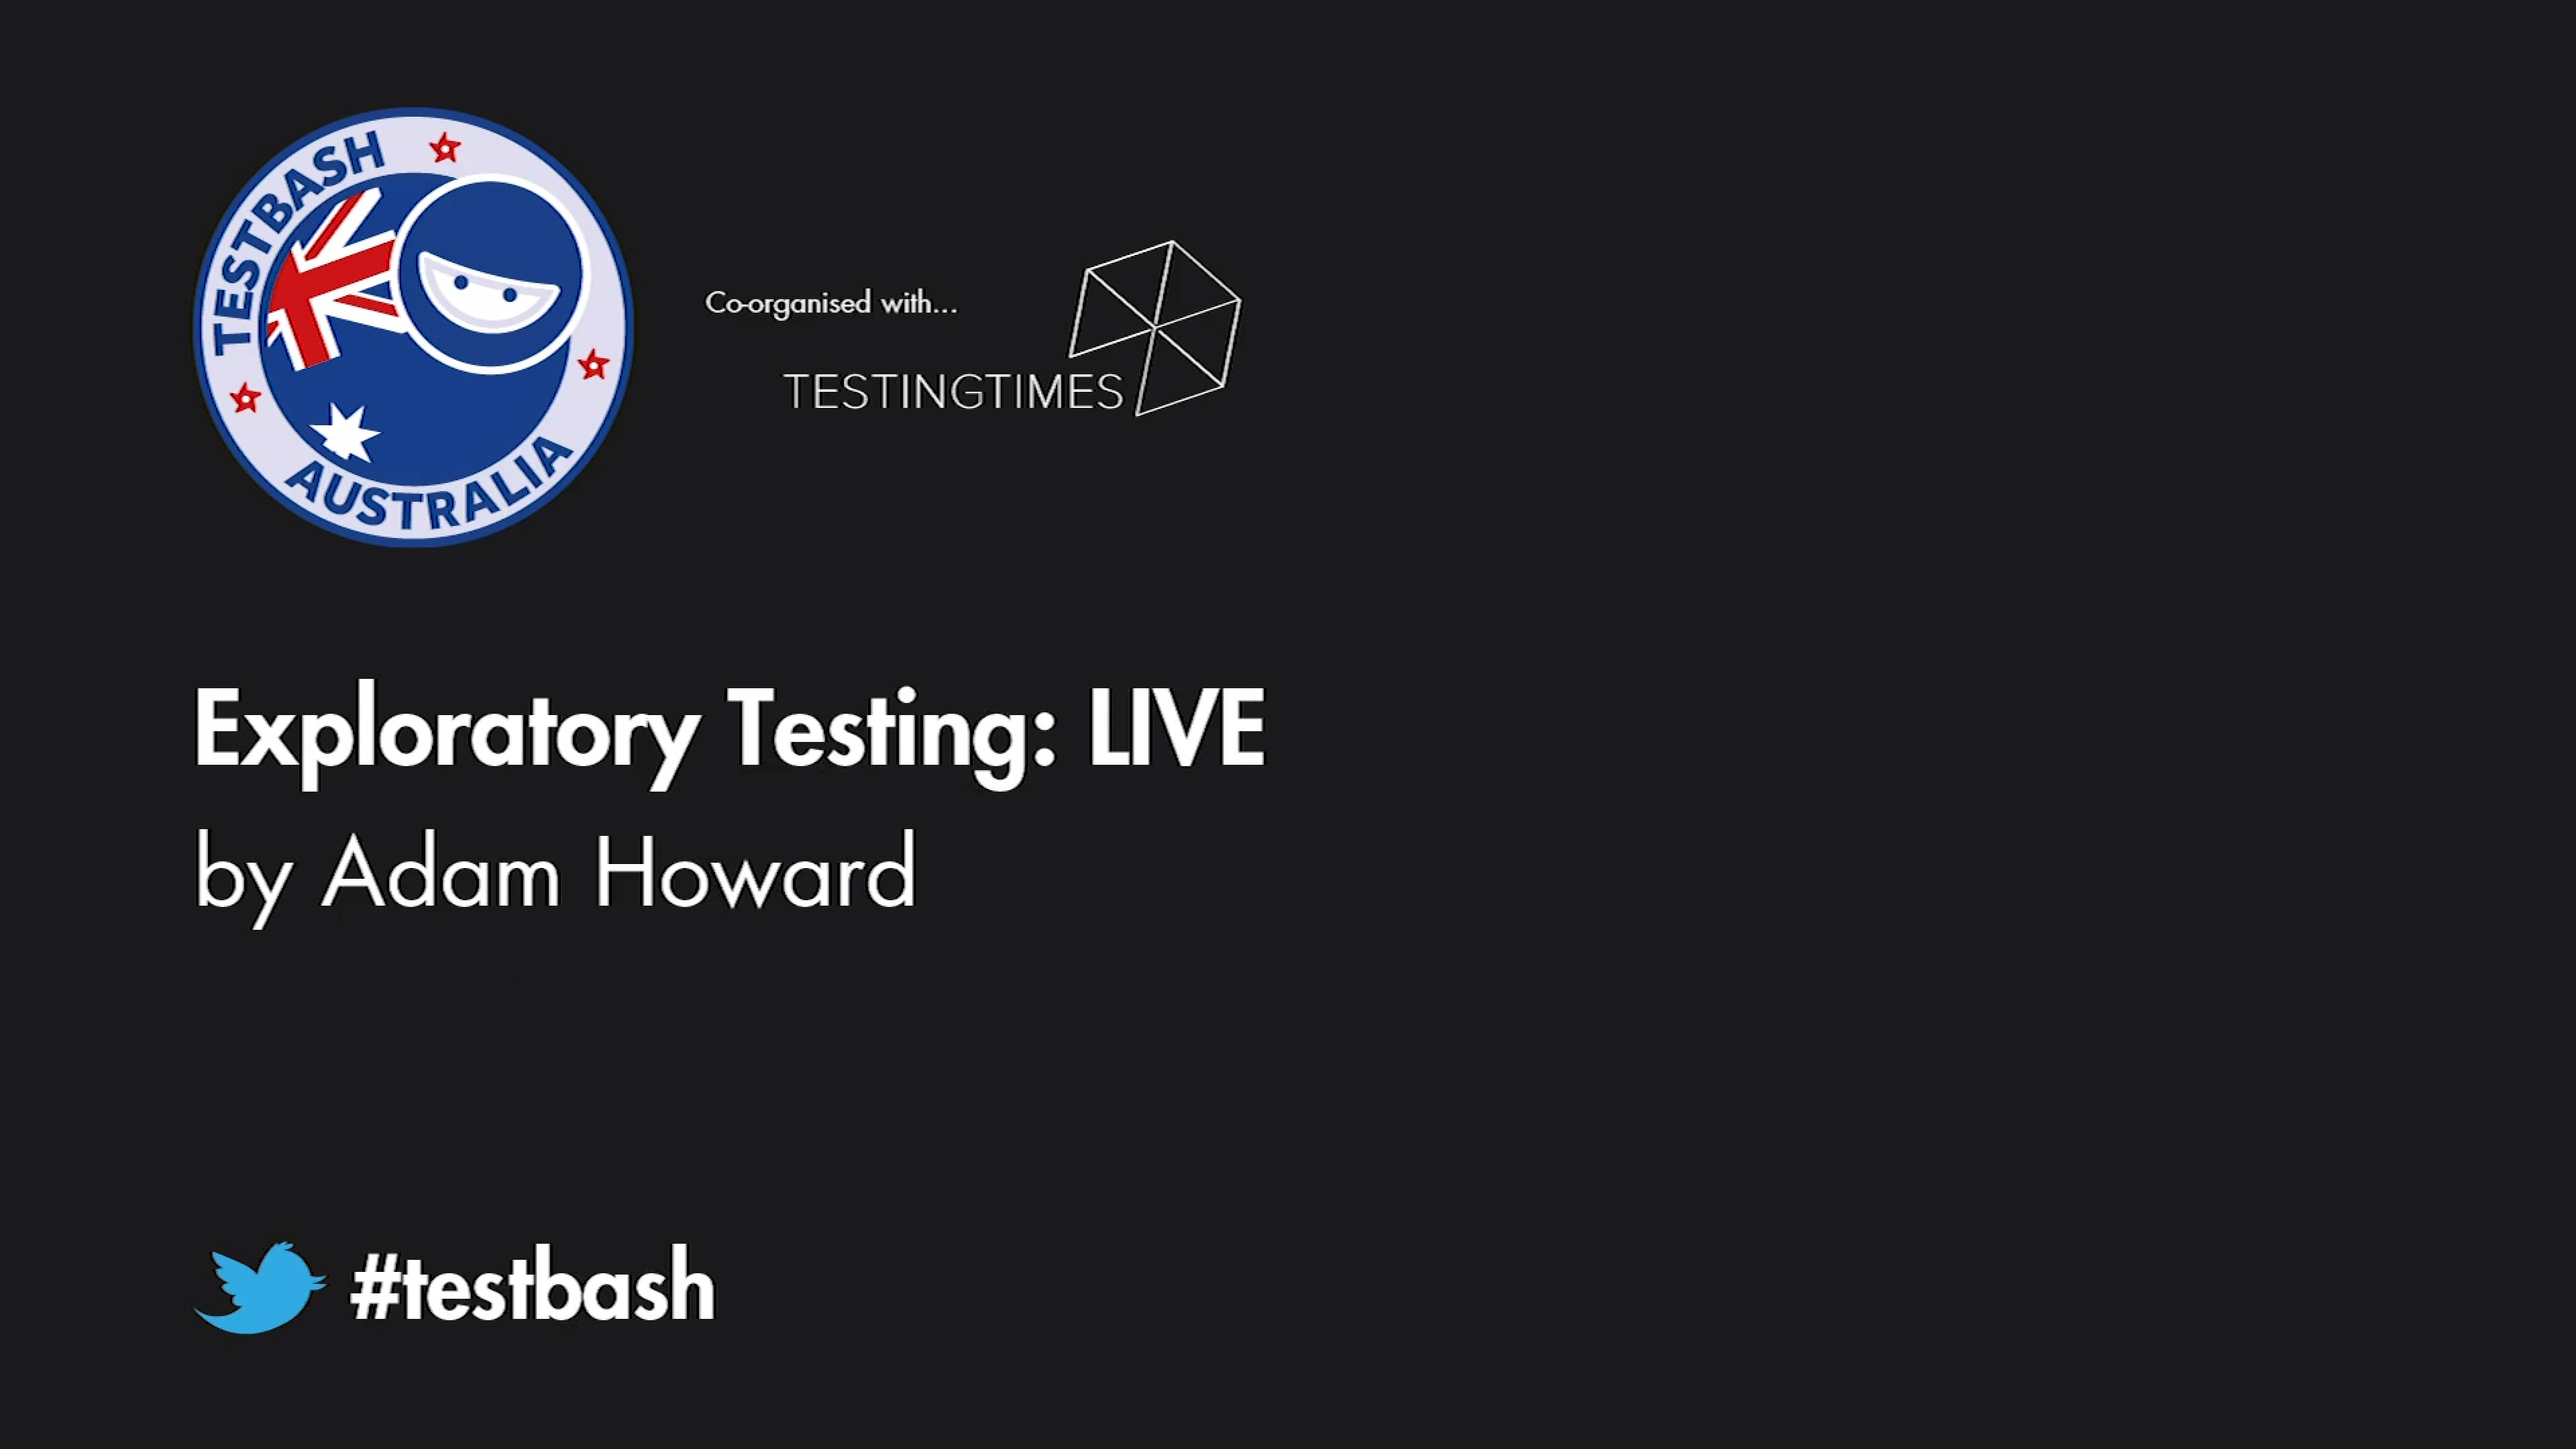 Exploratory Testing: LIVE - Adam Howard